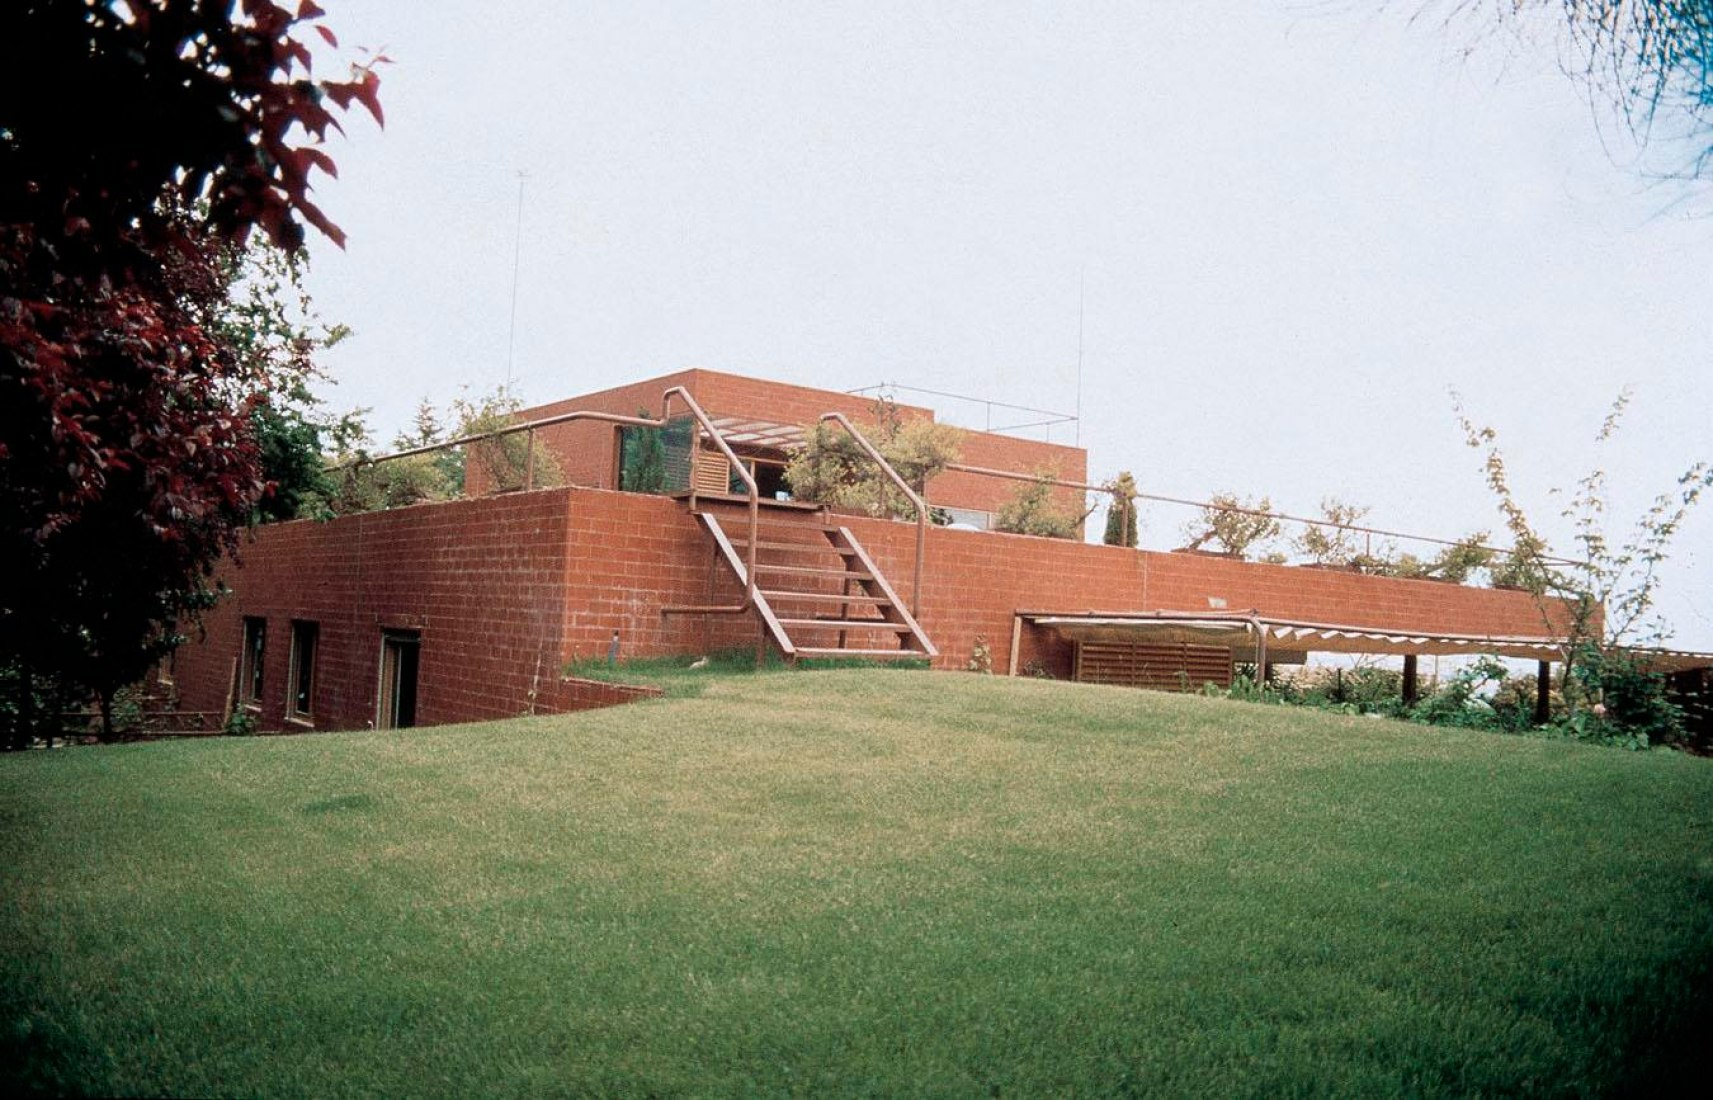 Casa Guzmán by Alejandro de la Sota. Image courtesy of Alejandro de la Sota Foundation